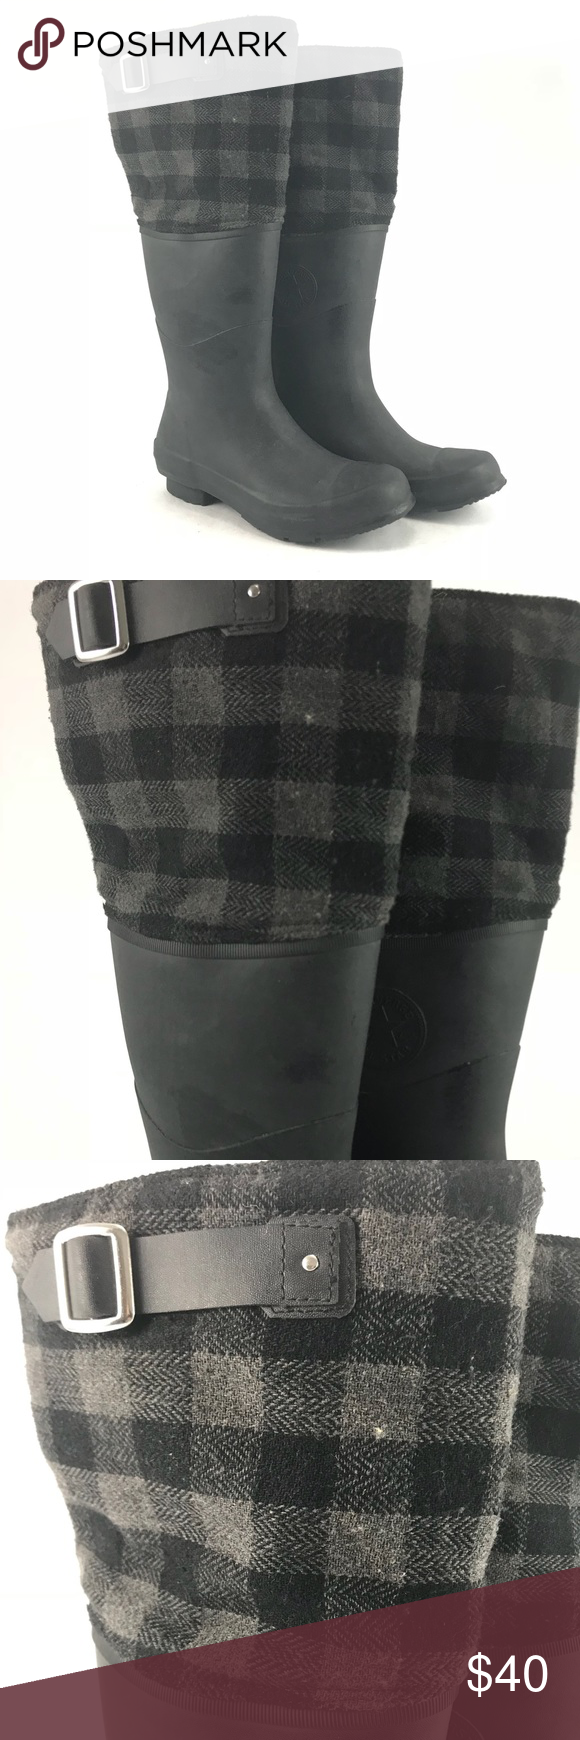 Converse tall rubber rain boots with plaid upper Pre-owned Converse tall  rubber rain boots with plaid upper edging. See pictures for condition. 6959caffc